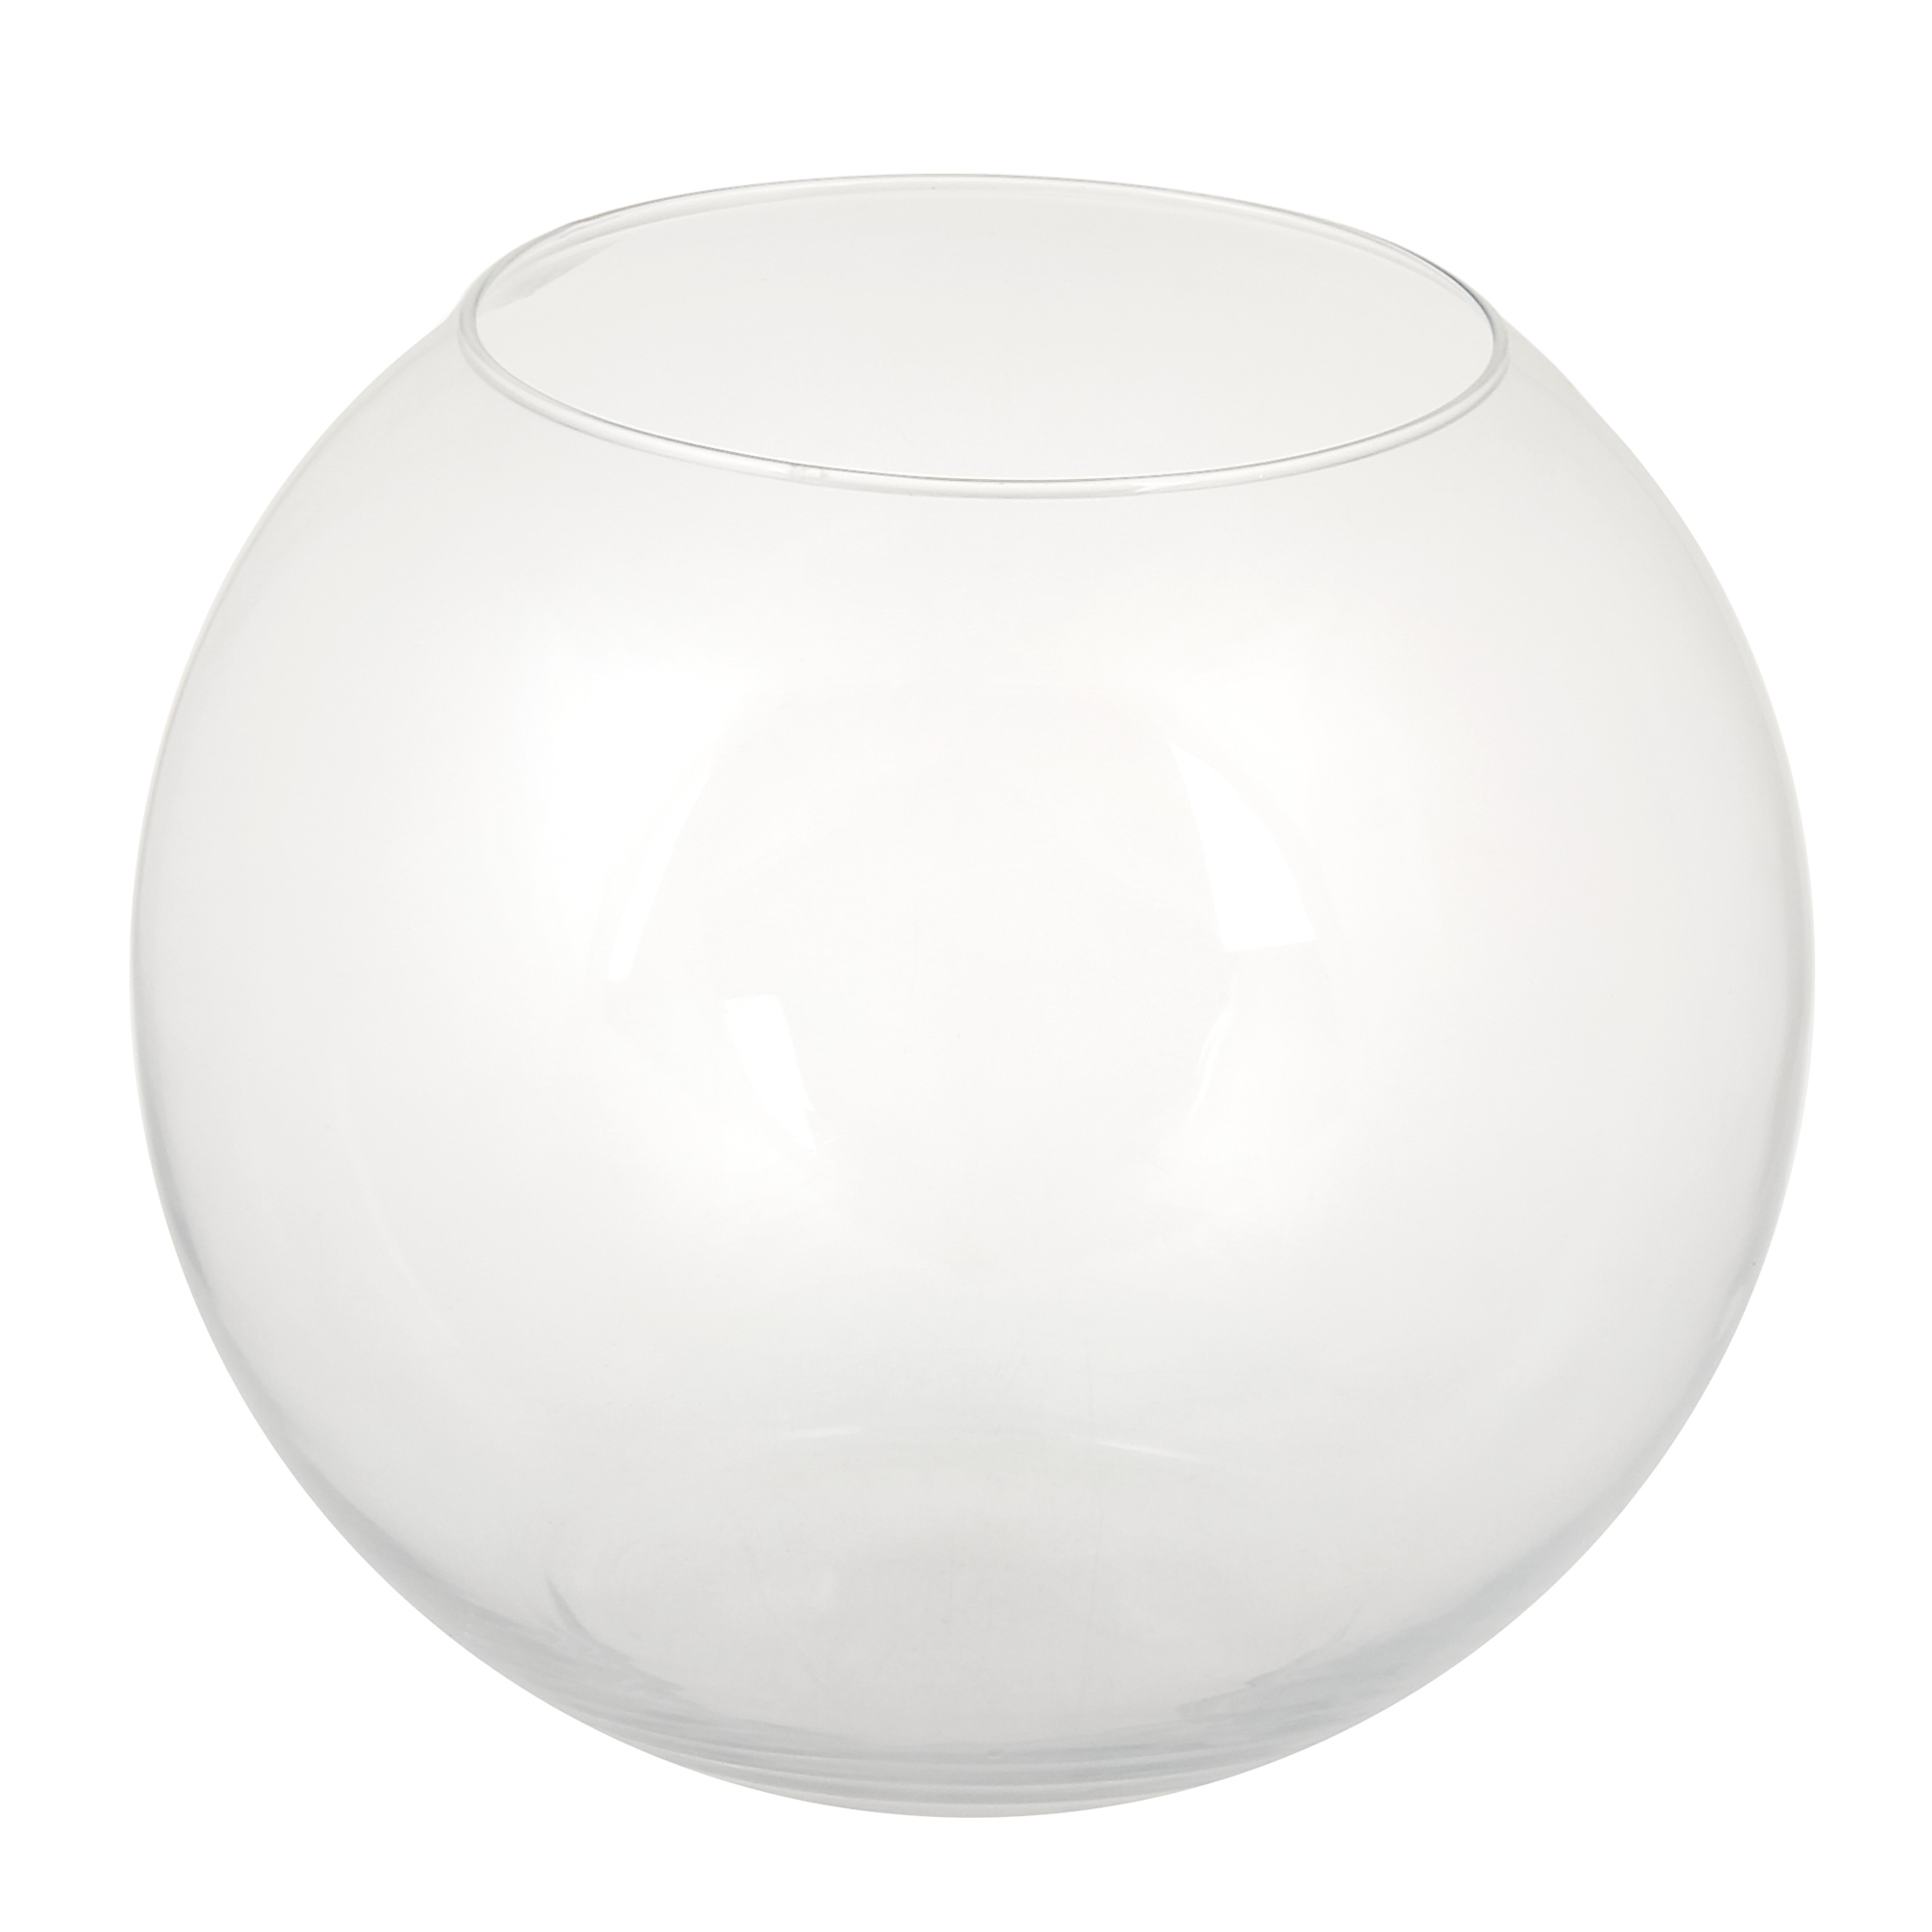 Ваза Hakbijl glass ball 30 см